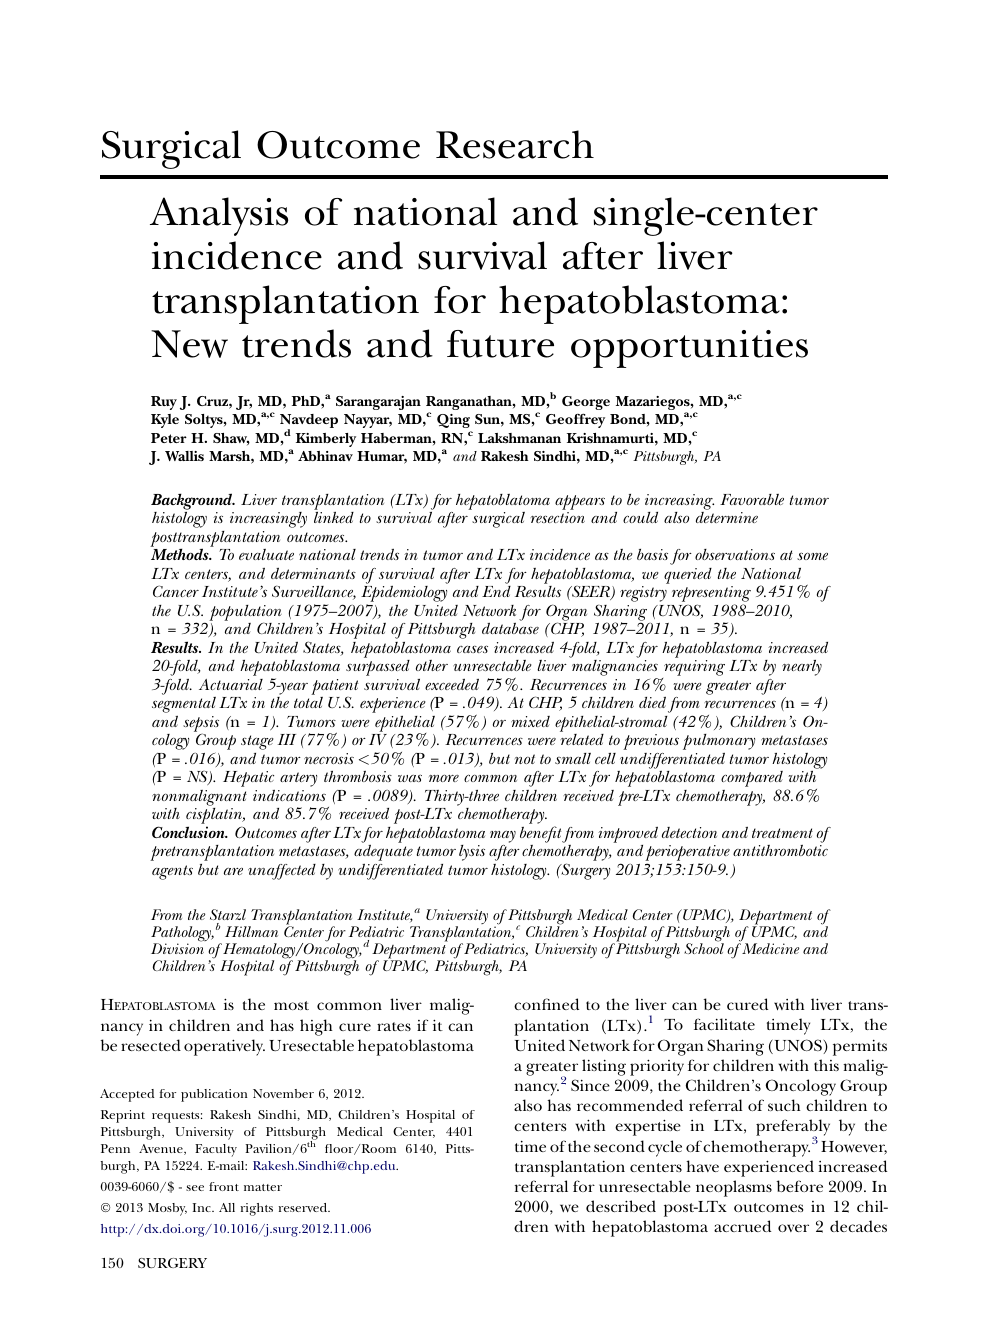 Analysis of national and single-center incidence and